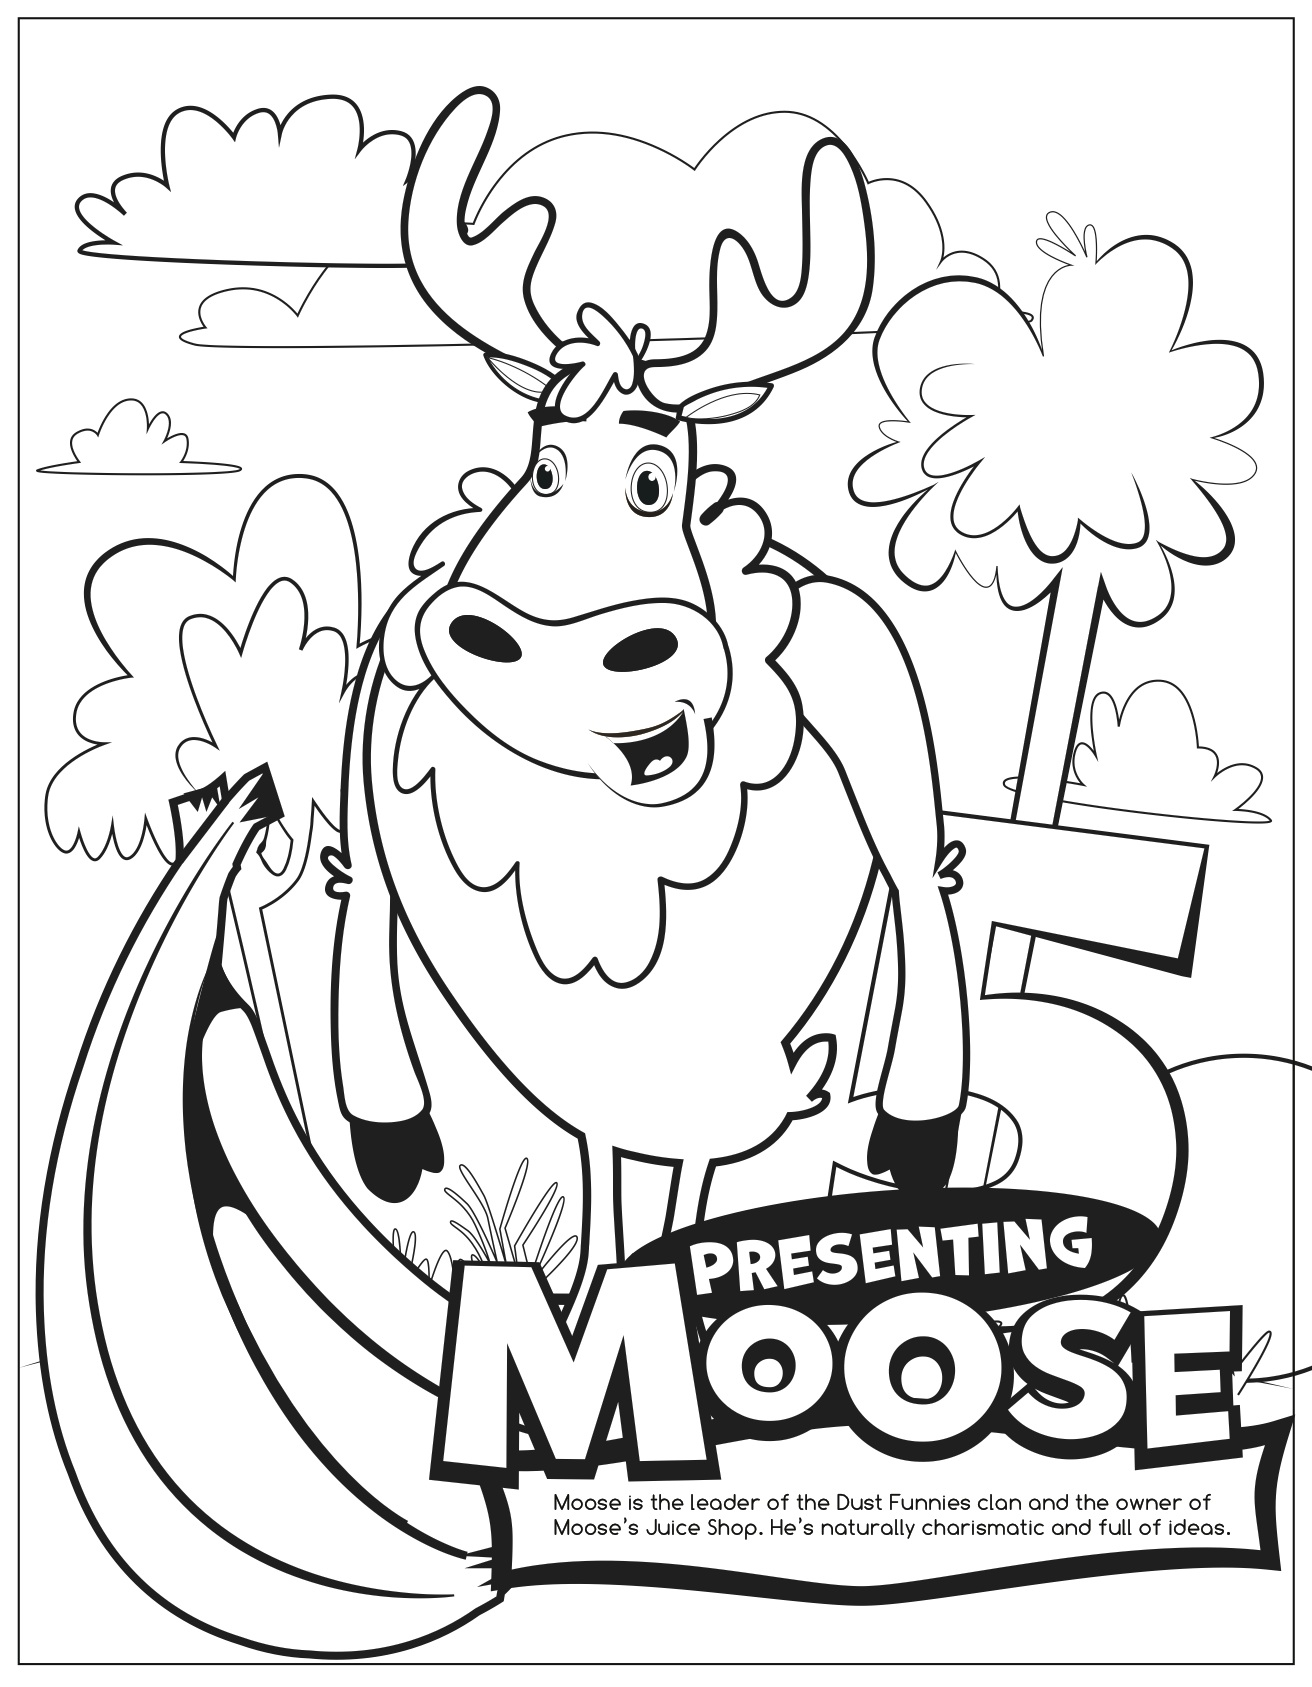 Coloring sheets with math problems - Download Math Coloring Pages 1